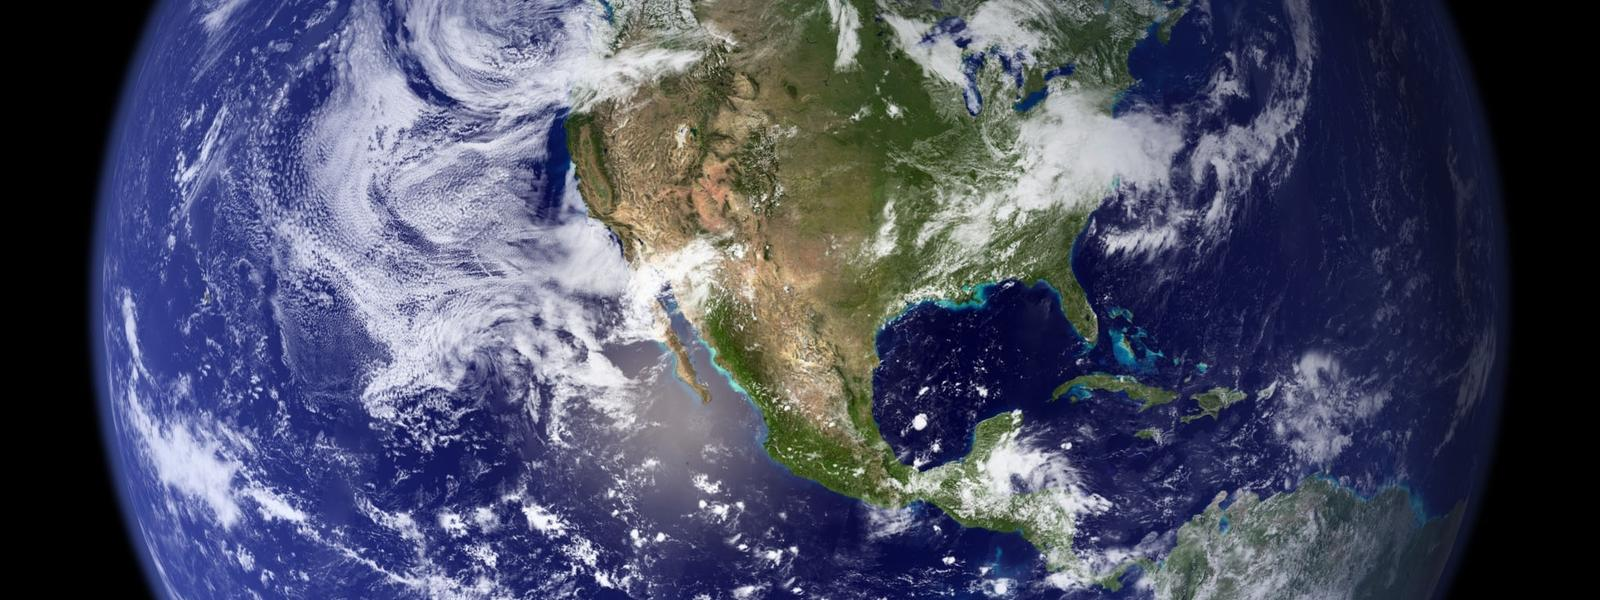 Planet Earth from space showing North America and the Atlantic and Pacific Oceans.